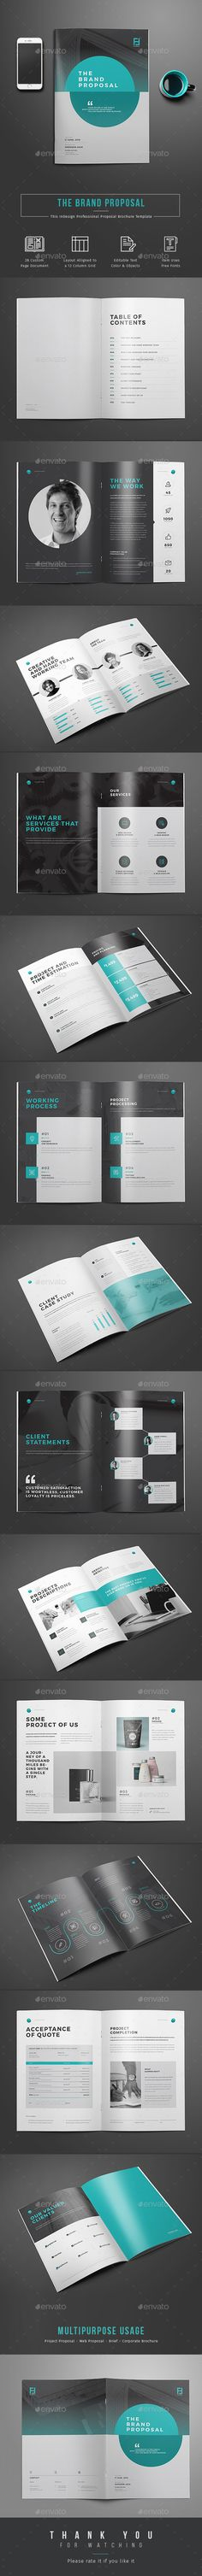 Invoice Stationery Microsoft and Proposals